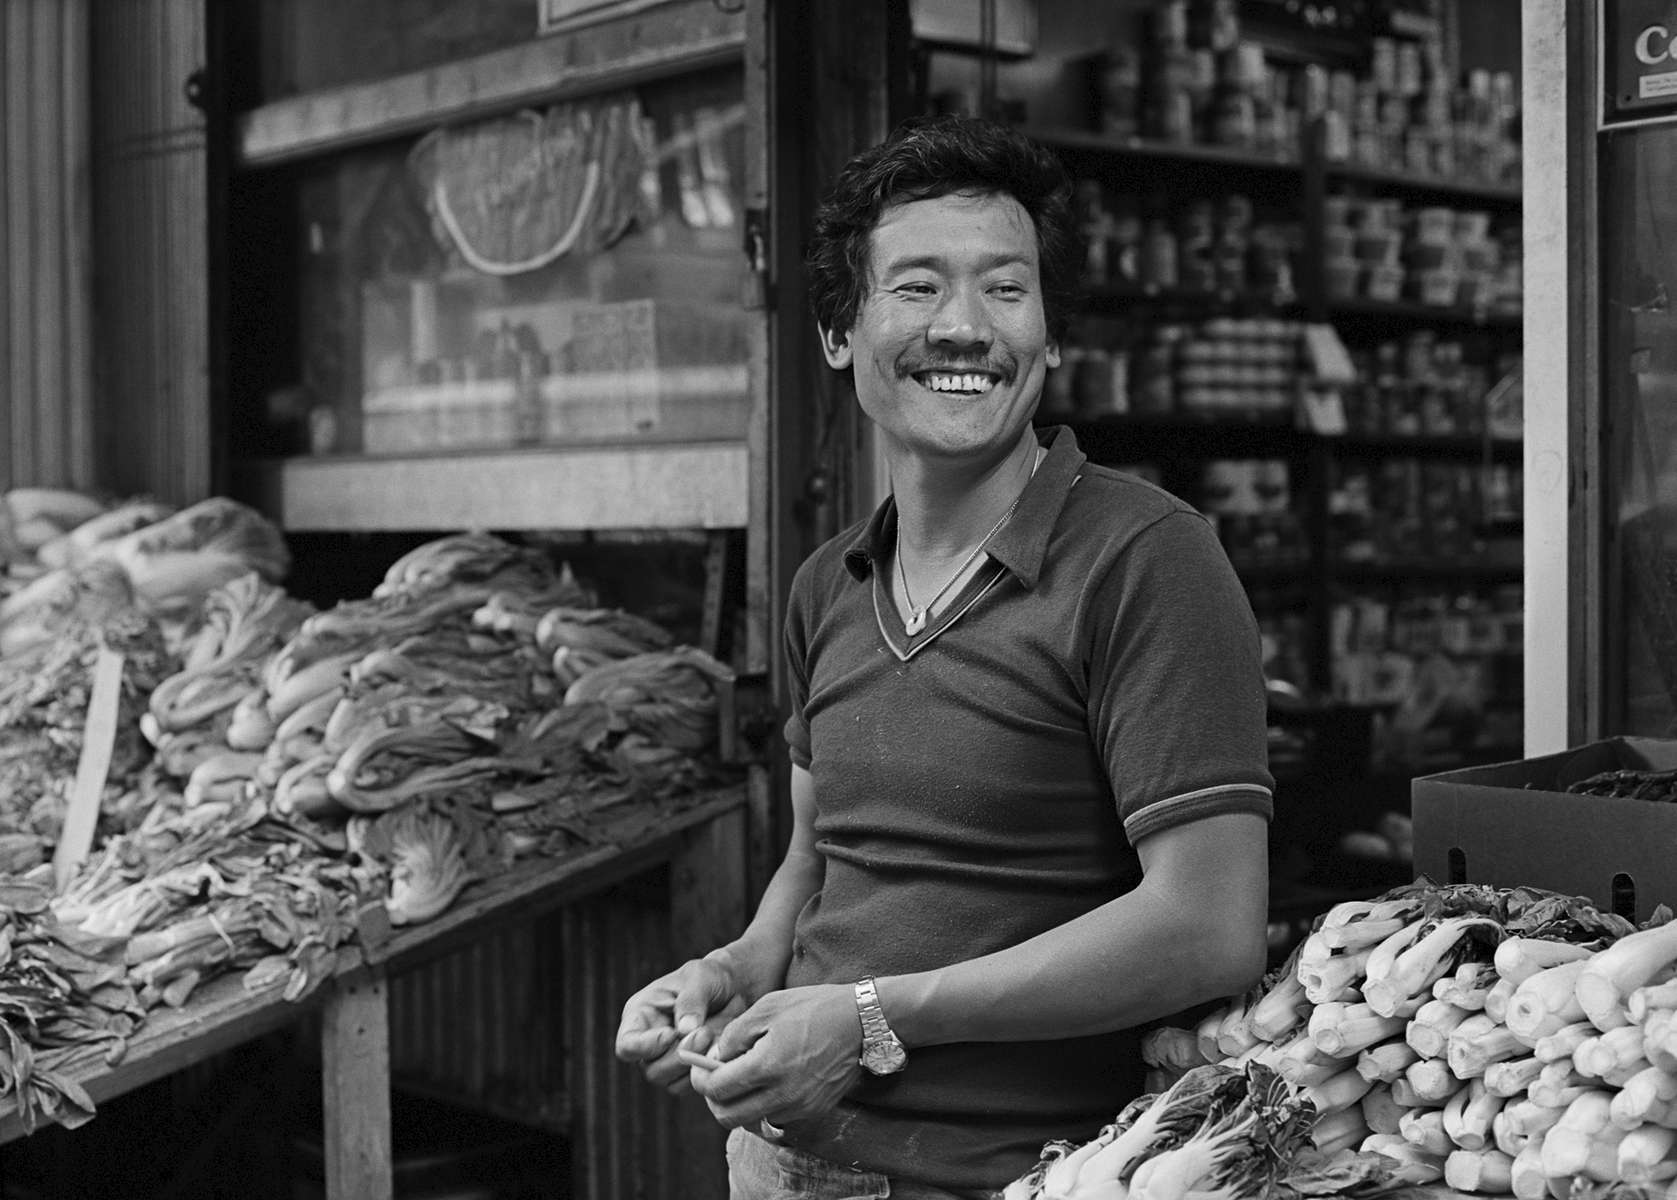 Frankie Wong in front of his grocery store on Catherine St., New York City, 1981.